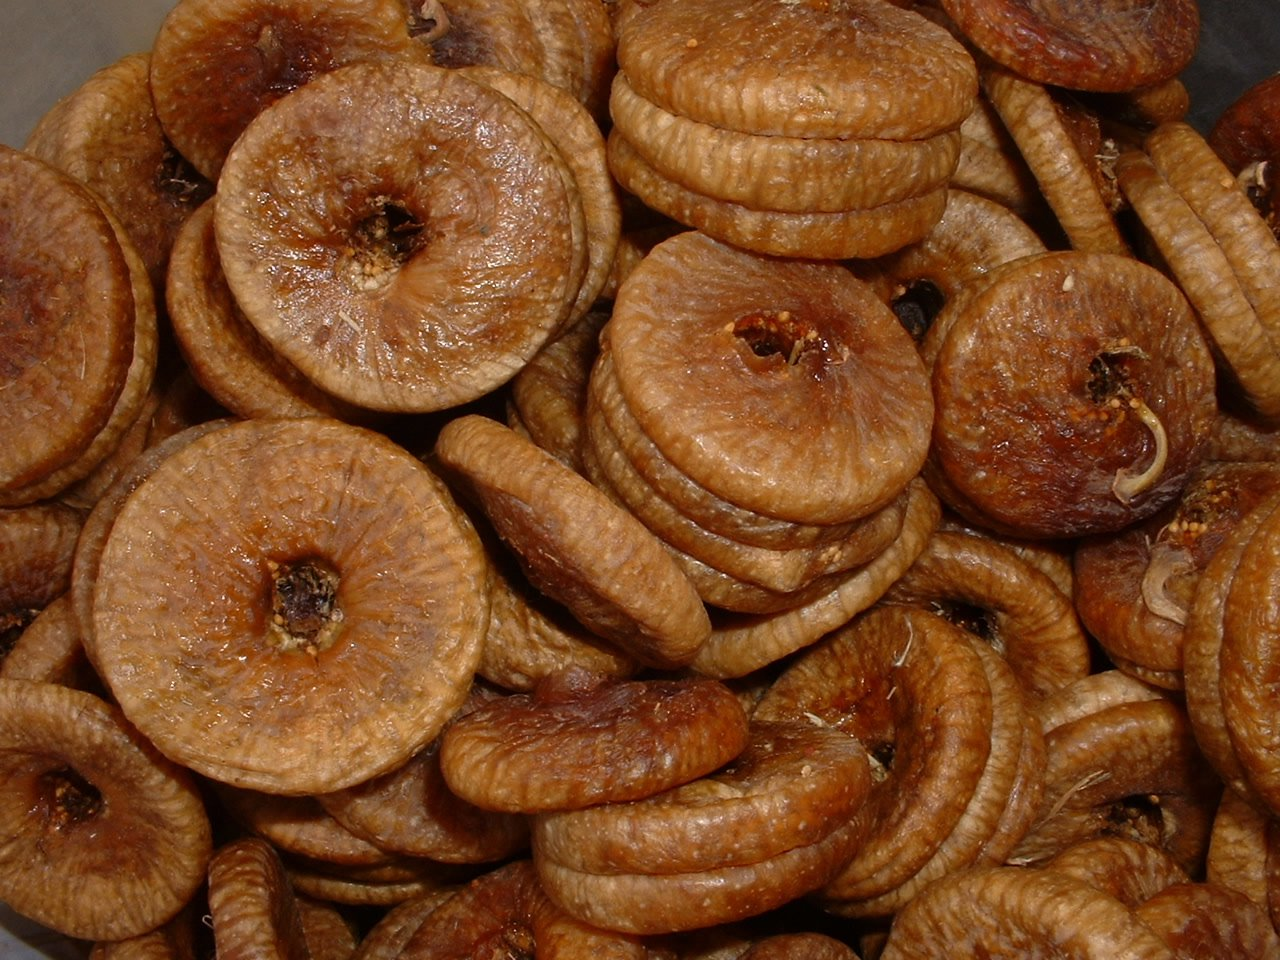 TIPS TO IMPROVE HEALTHY LIFE: Health Benefits of Figs or ... Dried Figs Health Benefits